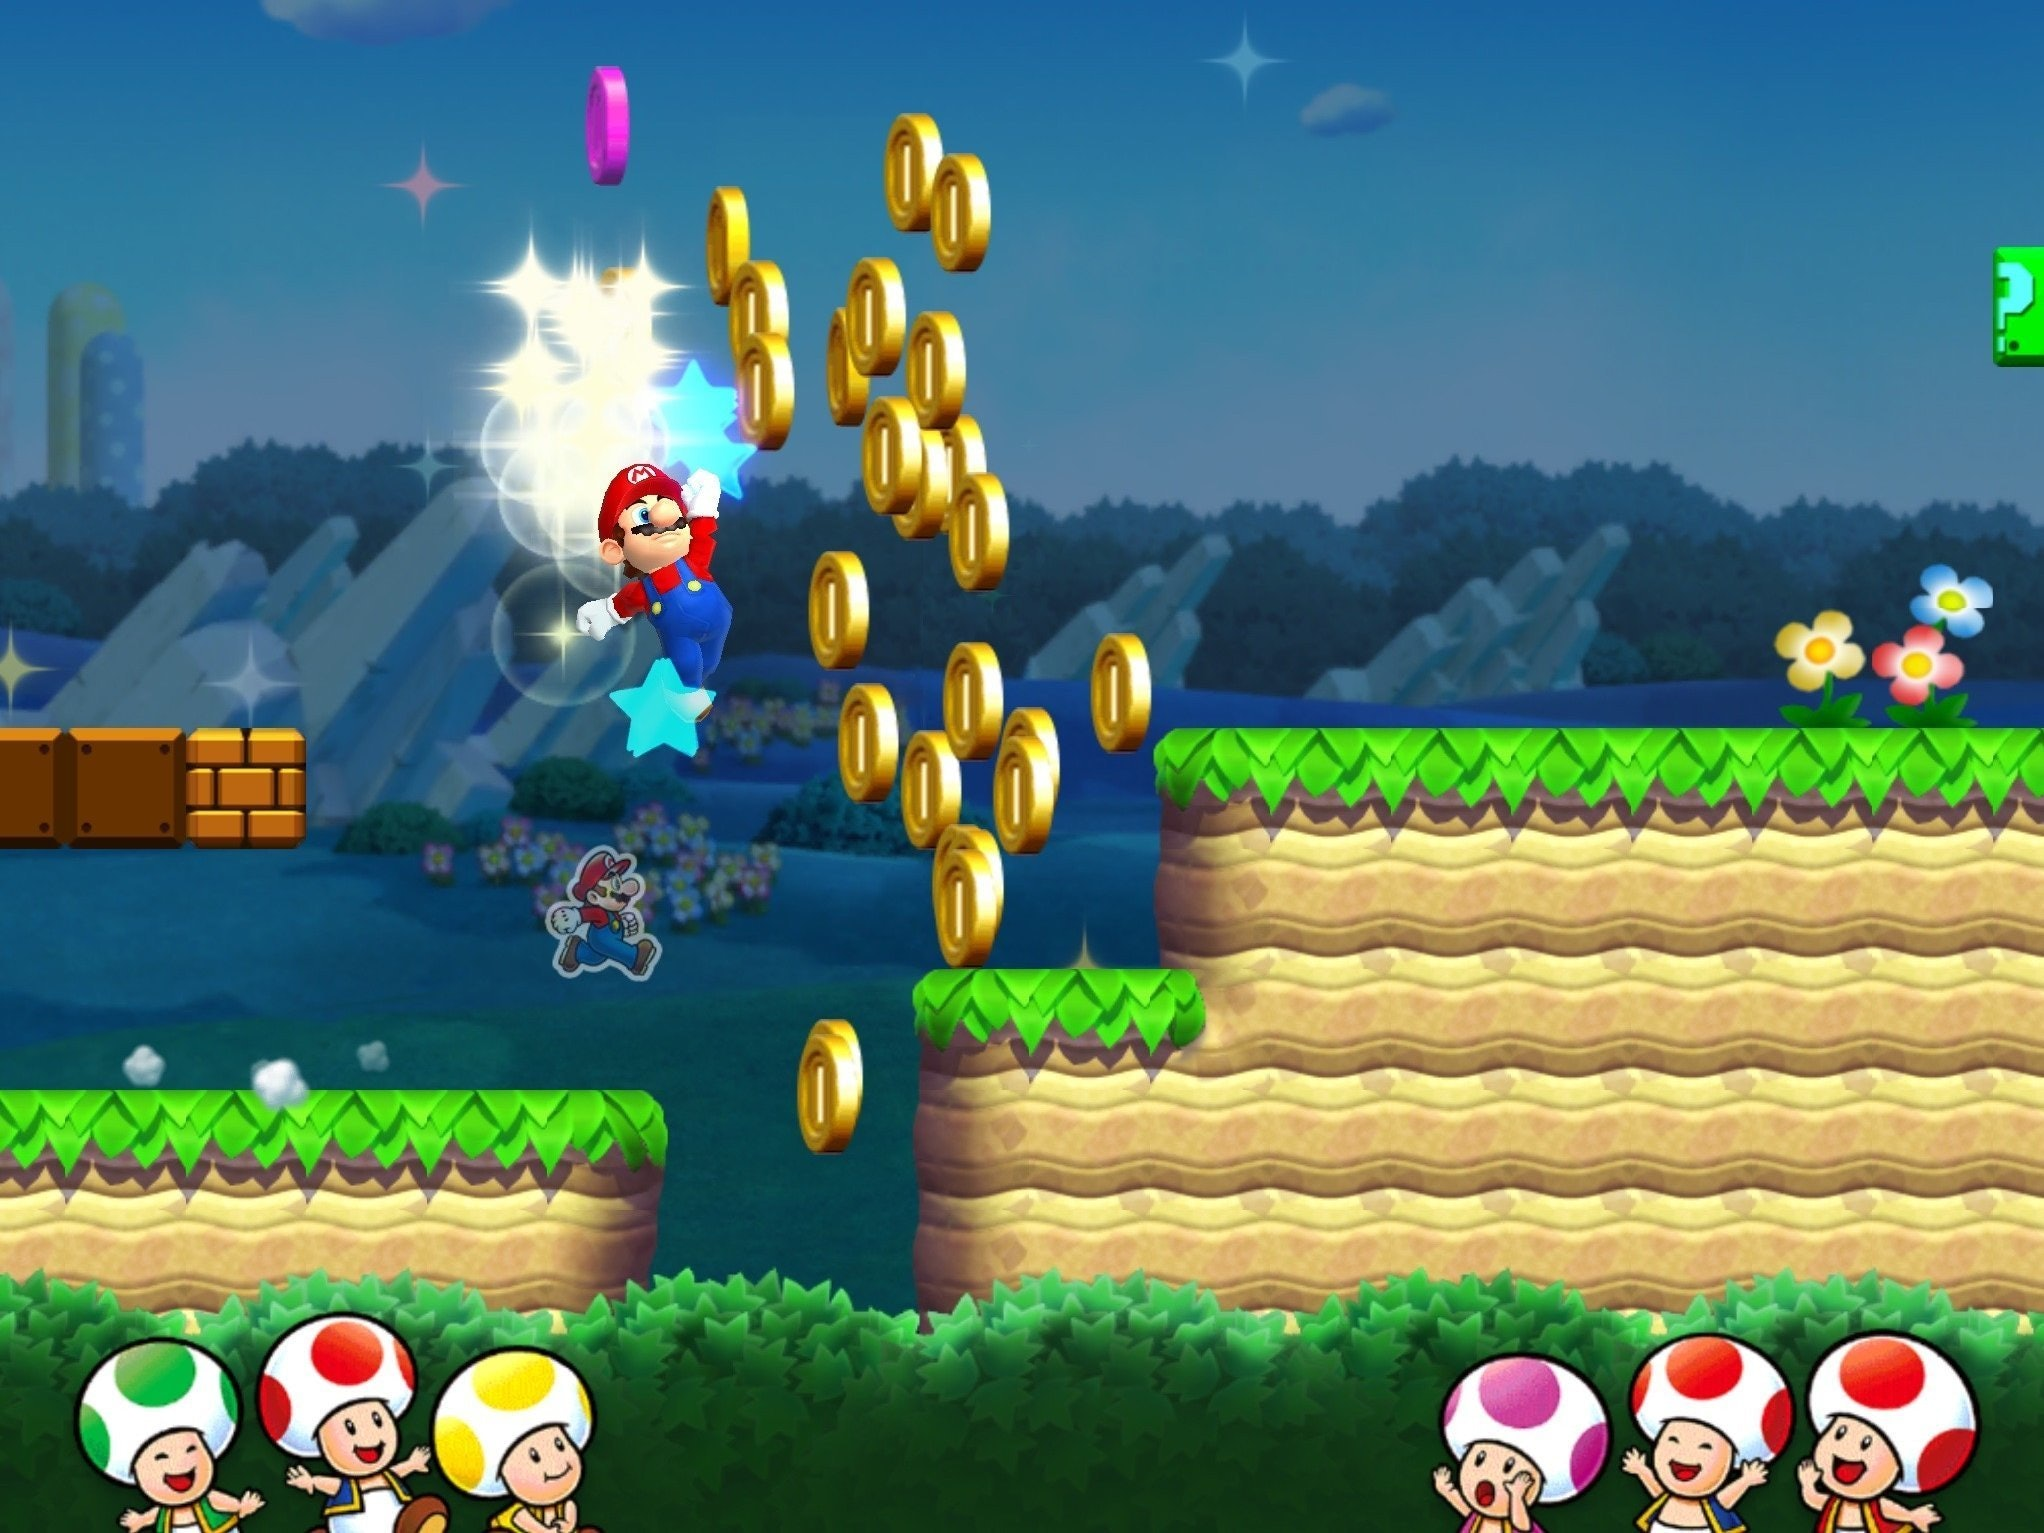 How to Win at Toad Rally in 'Super Mario Run'